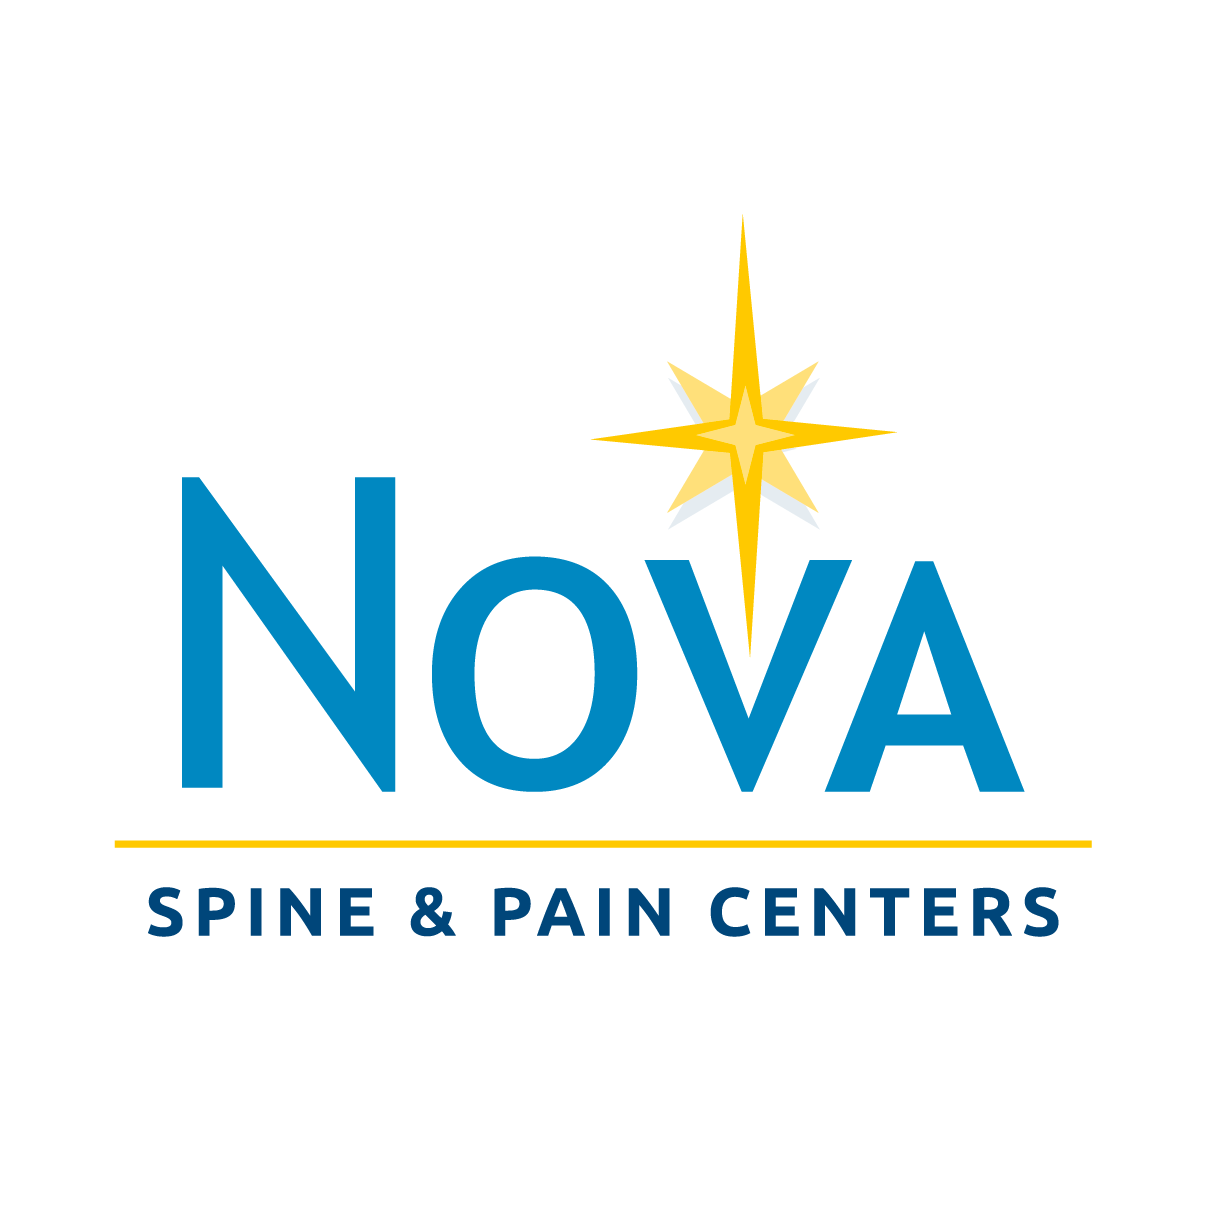 NOVA Spine and Pain Centers